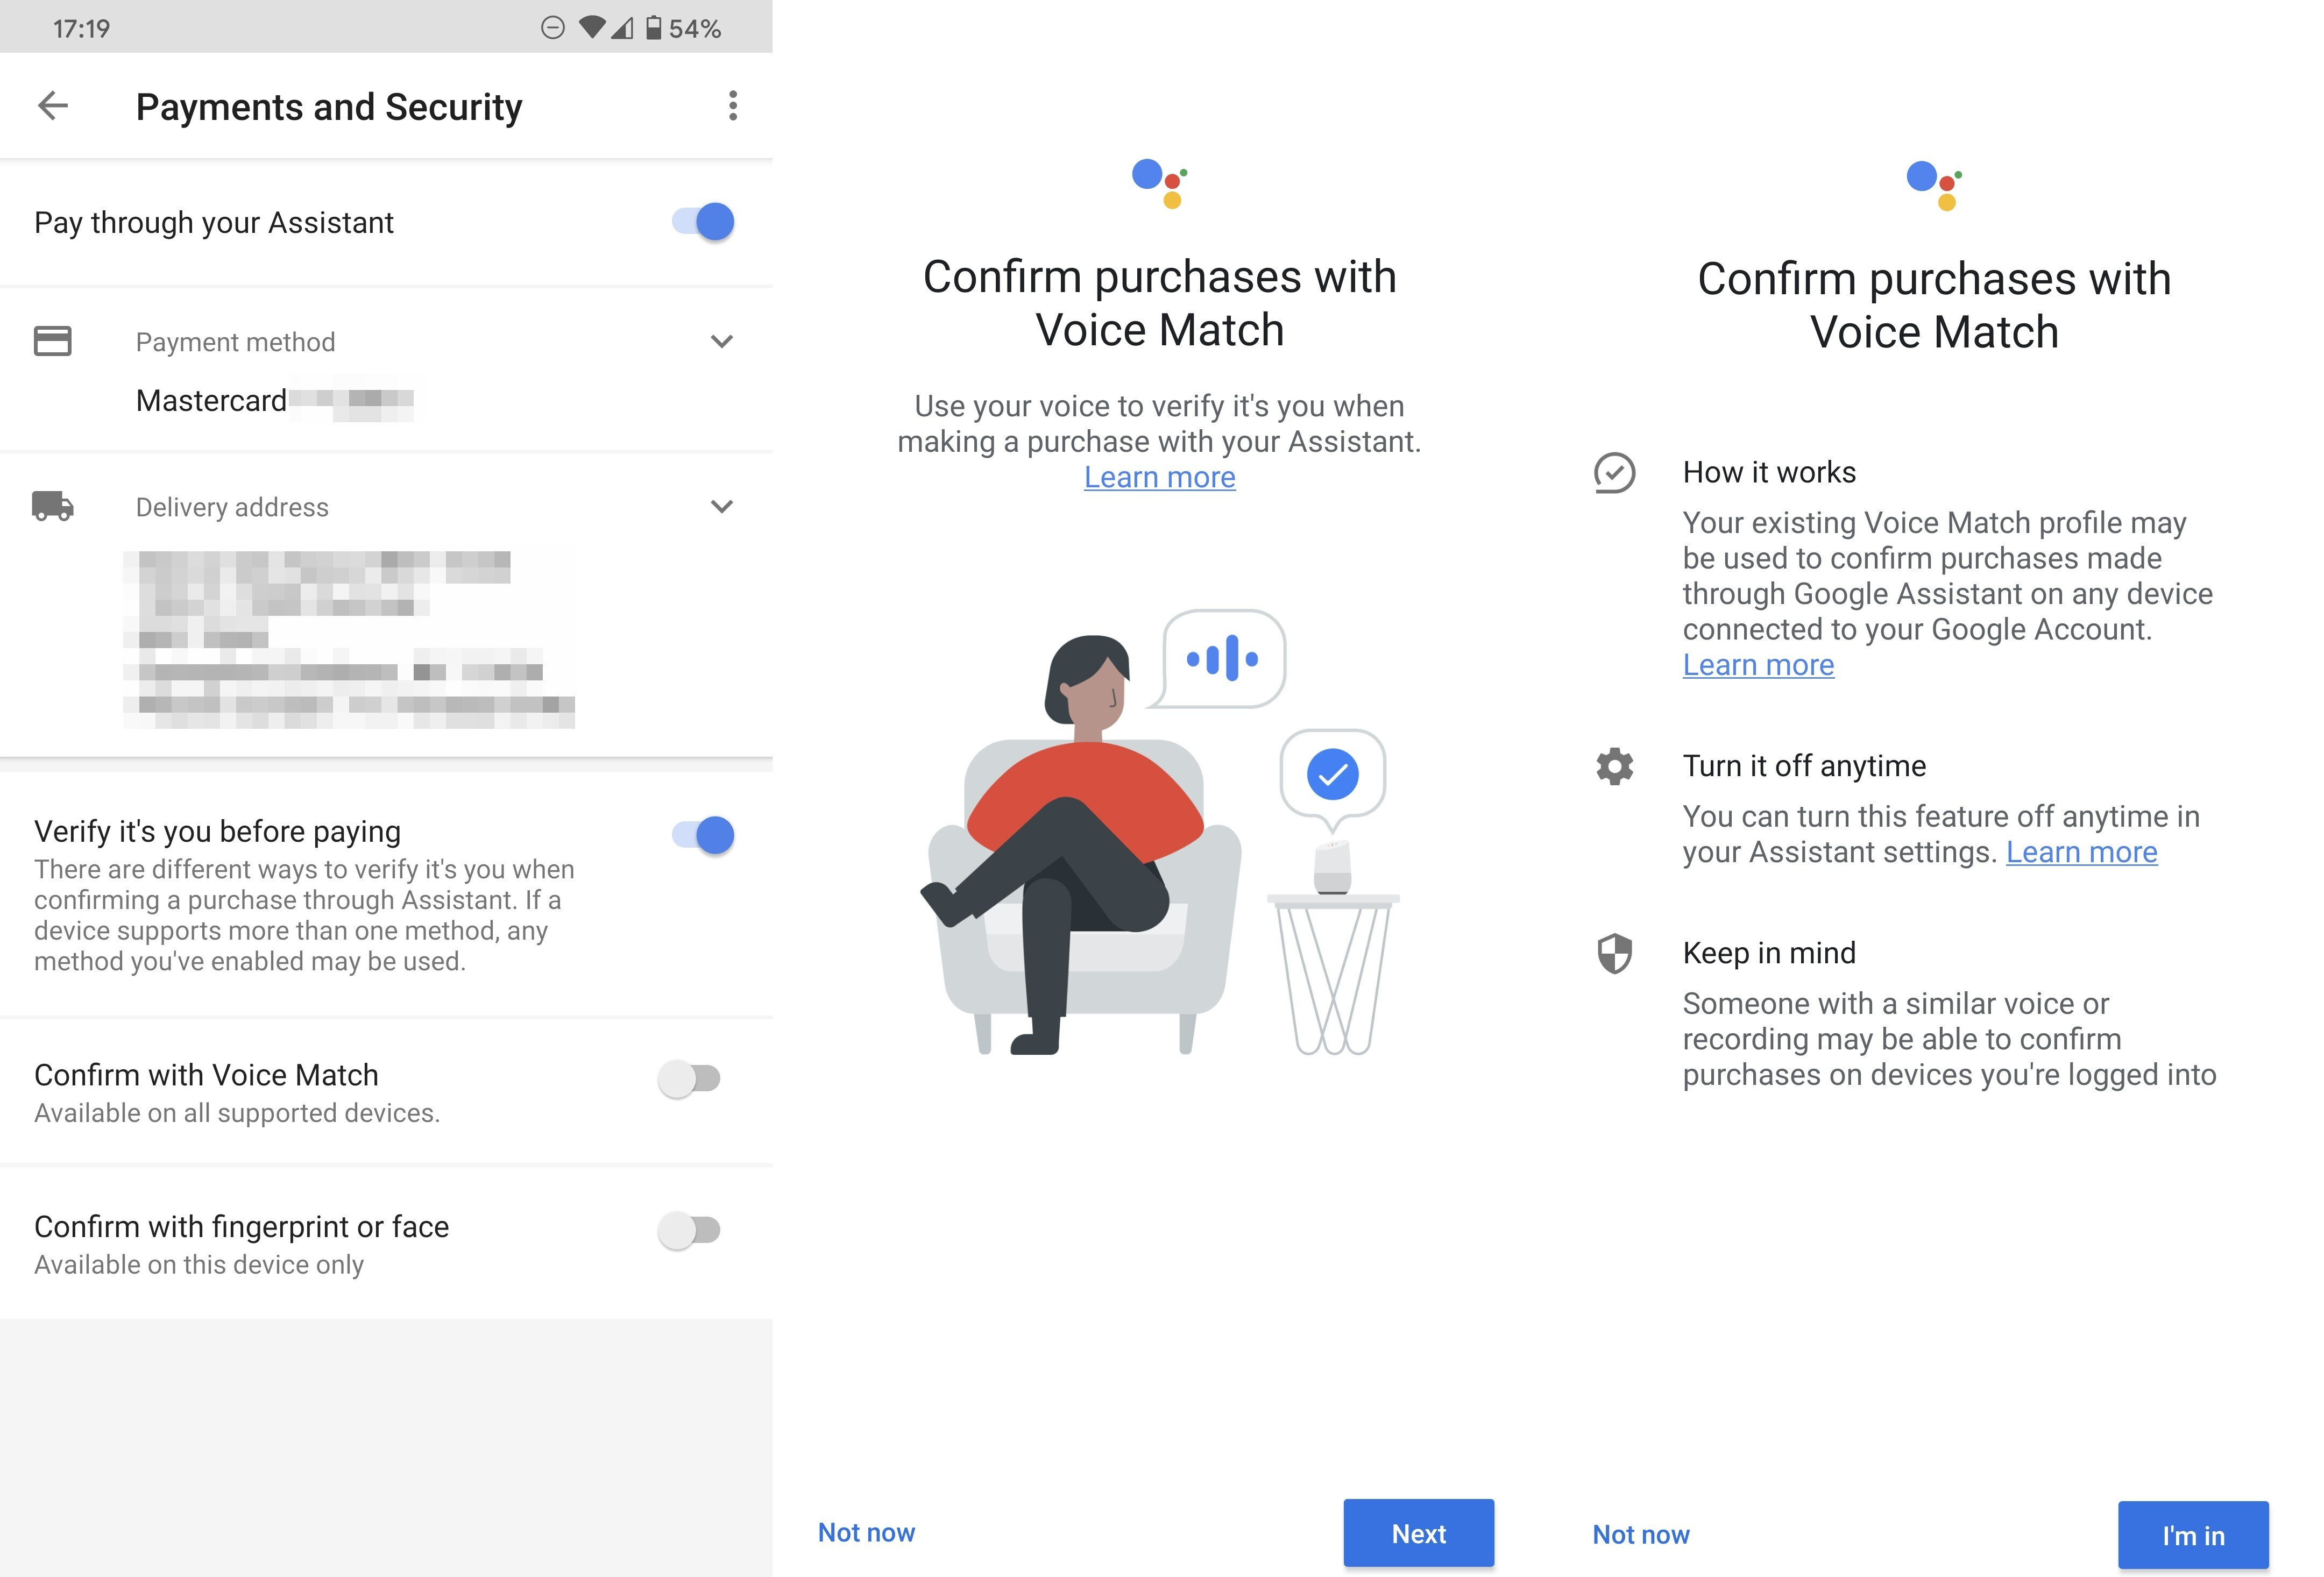 Image source - Android Police - Google lets users confirm payments with their voice